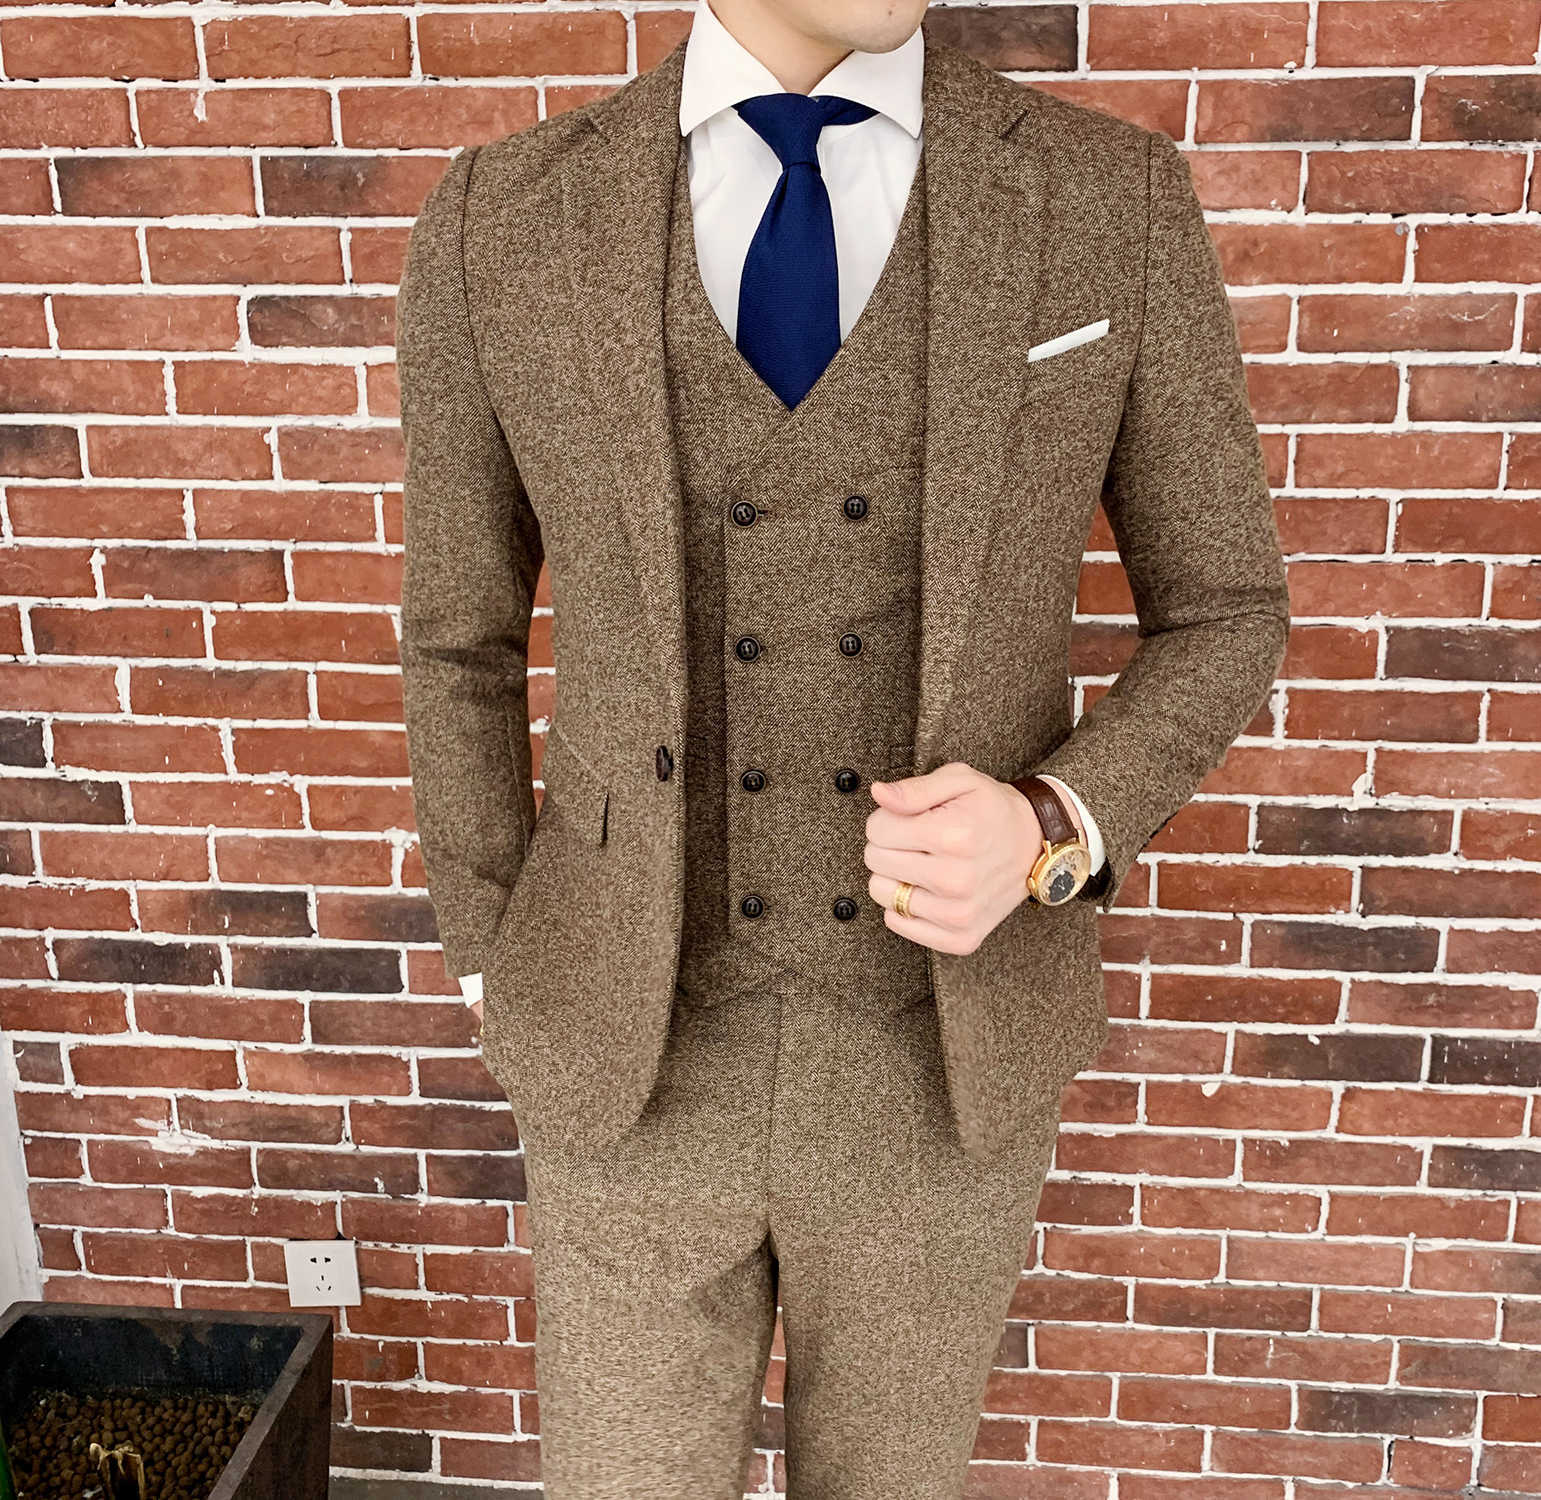 Brown Herringbone Suit Designer Costume Mariage Homme Party Suits Tuxedo Groom Wedding Men SuitTrajes De Hombre Para Fiesta 6xl